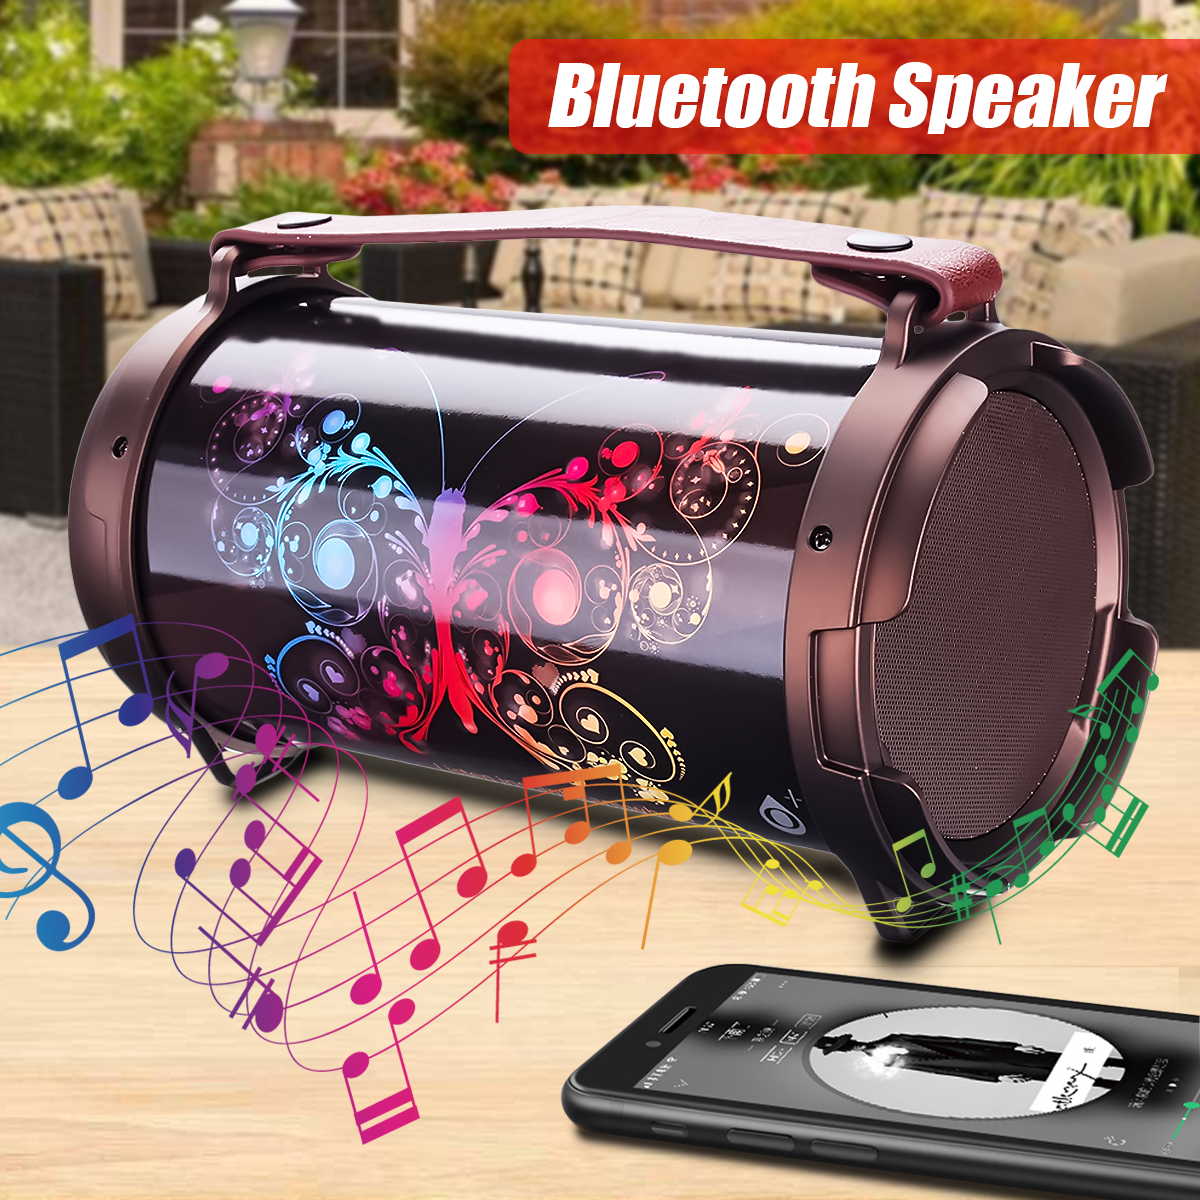 Portable Wireless Bluetooth Speaker 12W Loudspeakers Stereo FM Radio Speaker Support USB AUX TF Card Outdoor Party Music Player bluetooth speaker portable wireless speaker with led display support usb tf card aux mode fm radio for phone samsung xiaomi